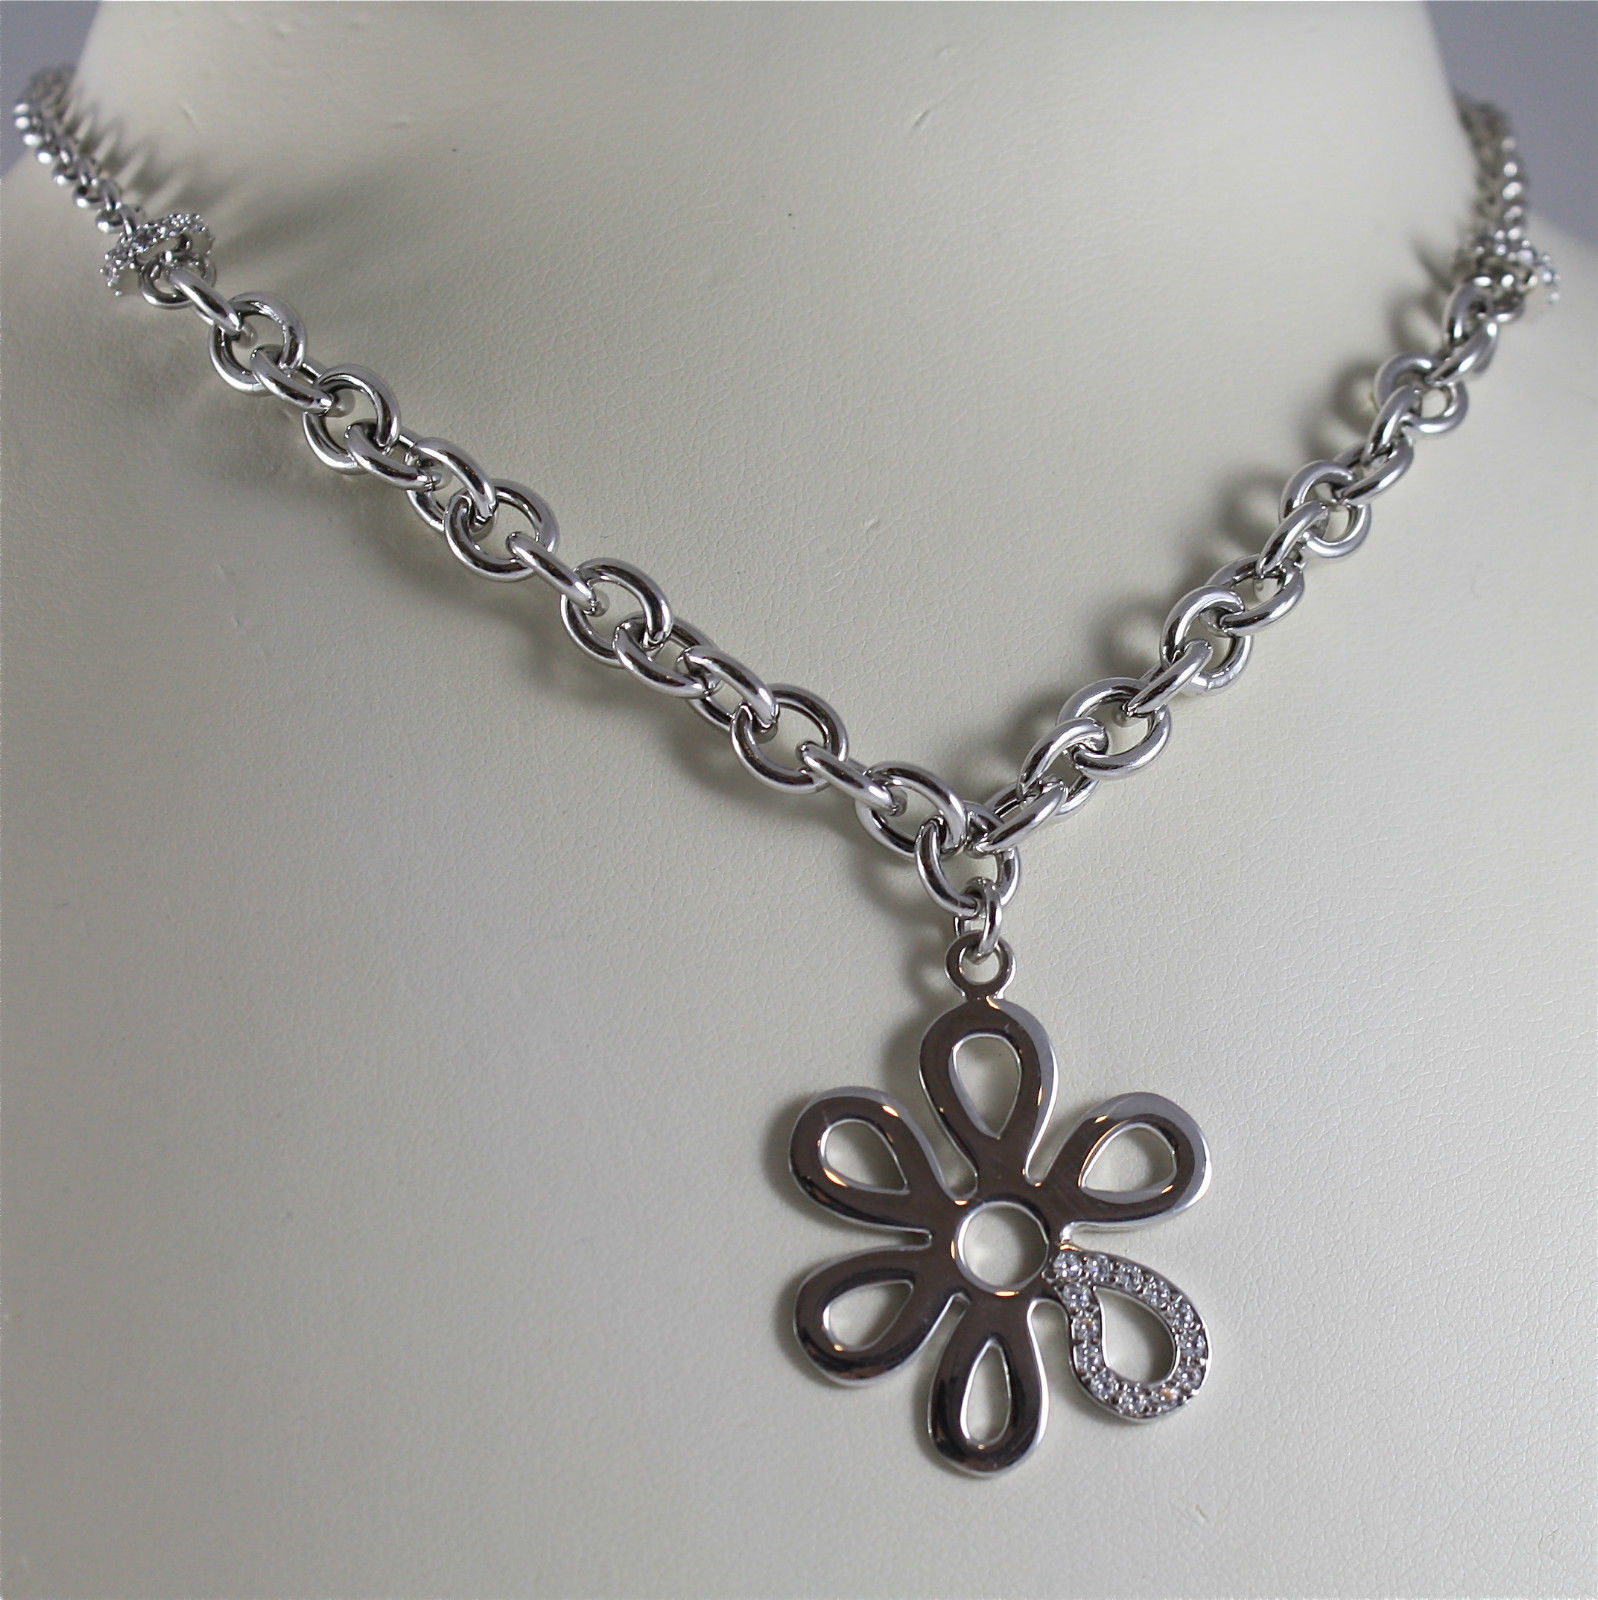 925 SILVER, AQUAFORTE NECKLACE, RHODIUM PL., FLOWER PENDANT, EMBEDDED ZIRCONIA.